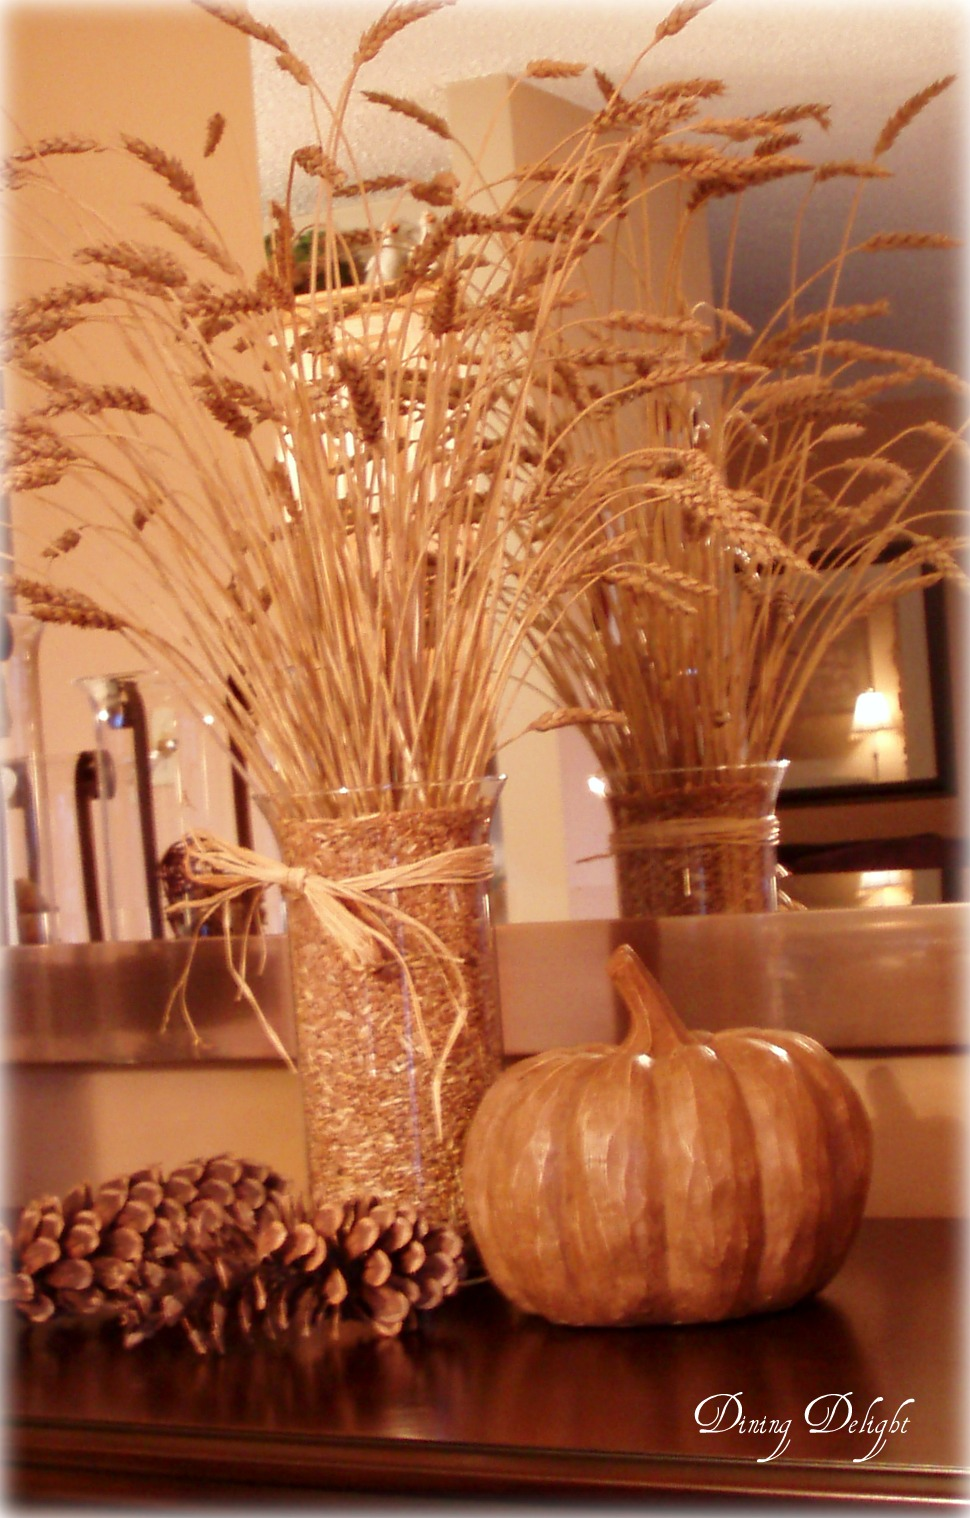 Dining delight fall wheat centerpiece for Wheat centerpieces